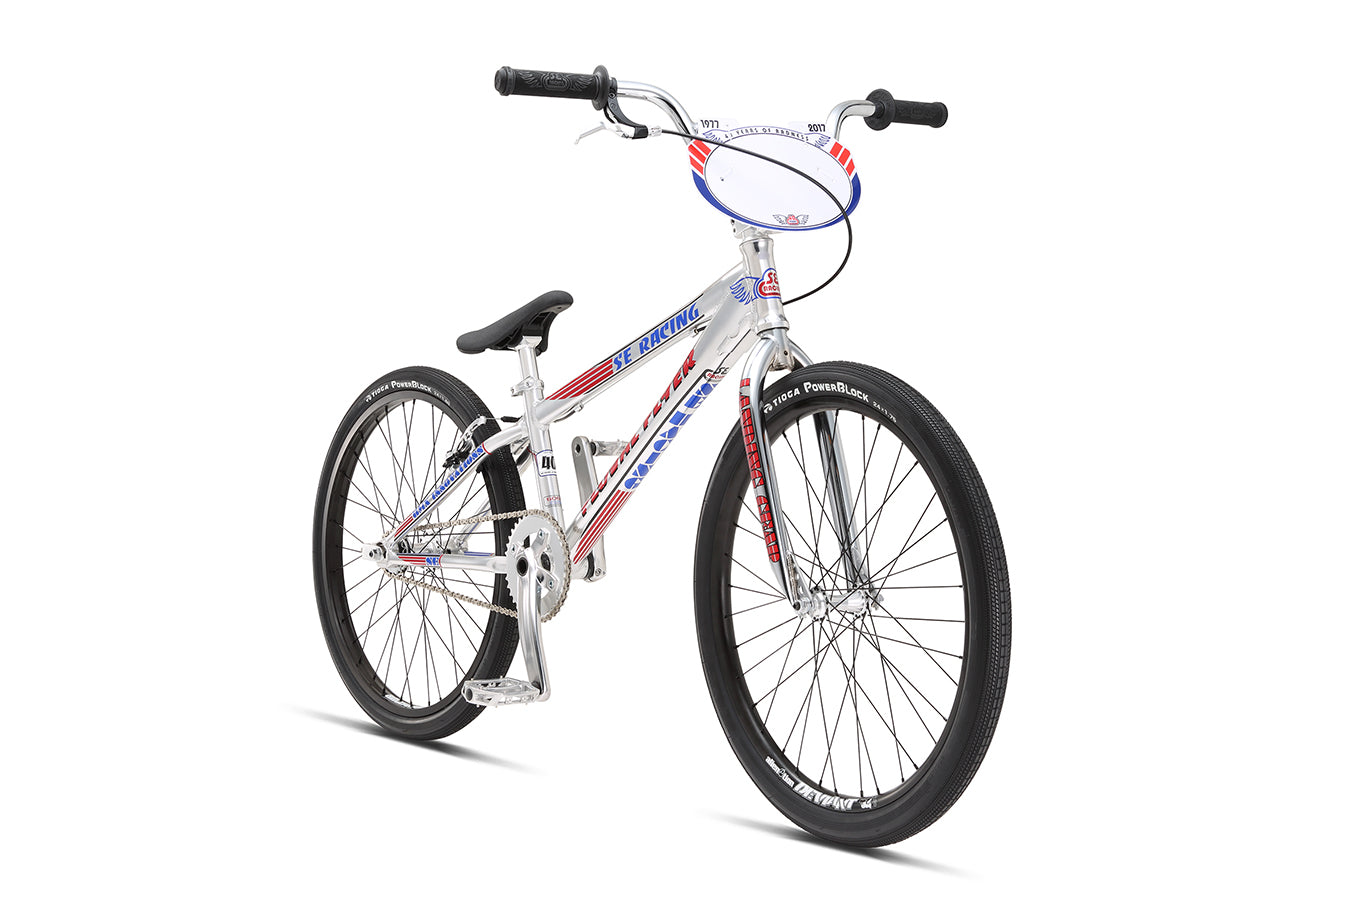 SE RACING BIKES NOW AVAILABLE IN THE SHOP